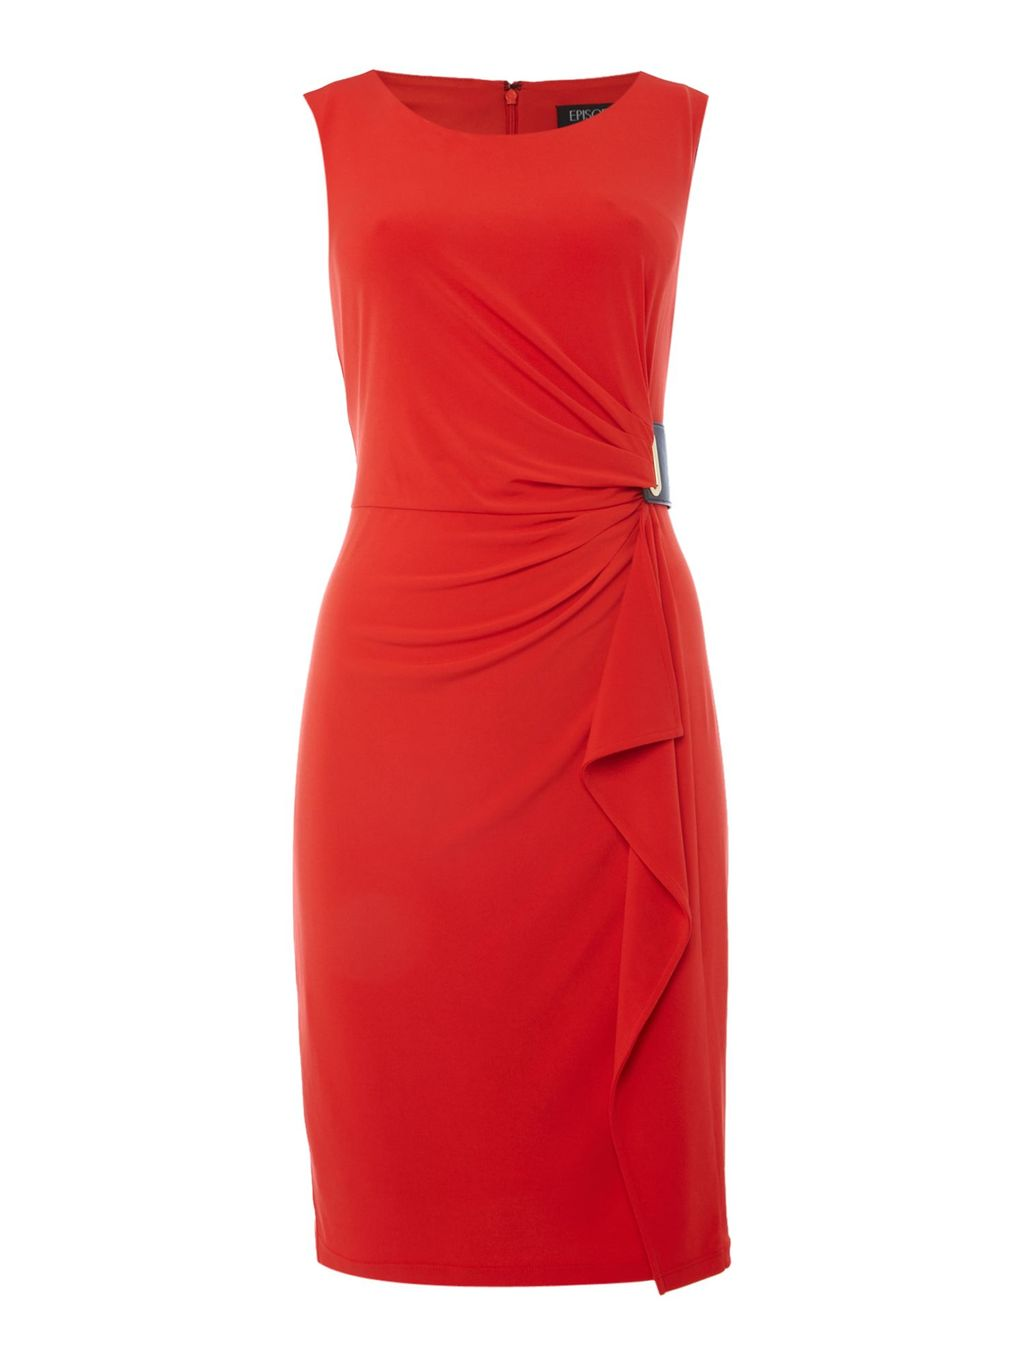 Wrap Dress With Buckle, Orange - style: shift; pattern: plain; sleeve style: sleeveless; predominant colour: true red; occasions: evening; length: just above the knee; fit: body skimming; fibres: polyester/polyamide - 100%; neckline: crew; hip detail: adds bulk at the hips; sleeve length: sleeveless; pattern type: fabric; texture group: jersey - stretchy/drapey; season: s/s 2016; wardrobe: event